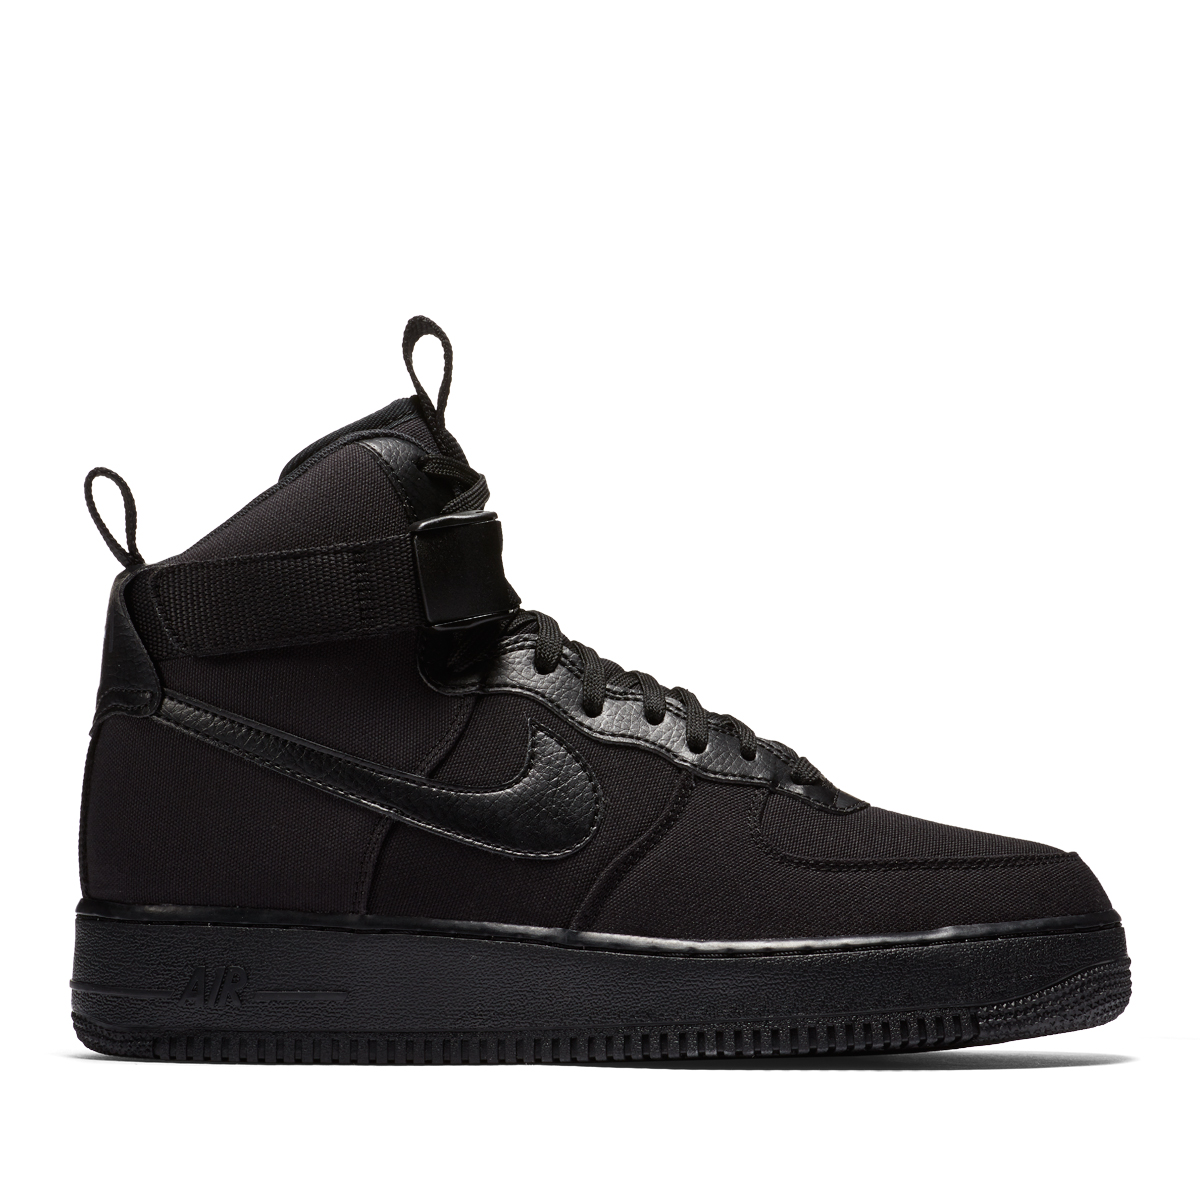 on sale 1f446 a2ce9 NIKE AIR FORCE 1 HIGH  07 CANVAS (BLACK BLACK-ANTHRACITE) (Nike air force 1  high 07 canvas)